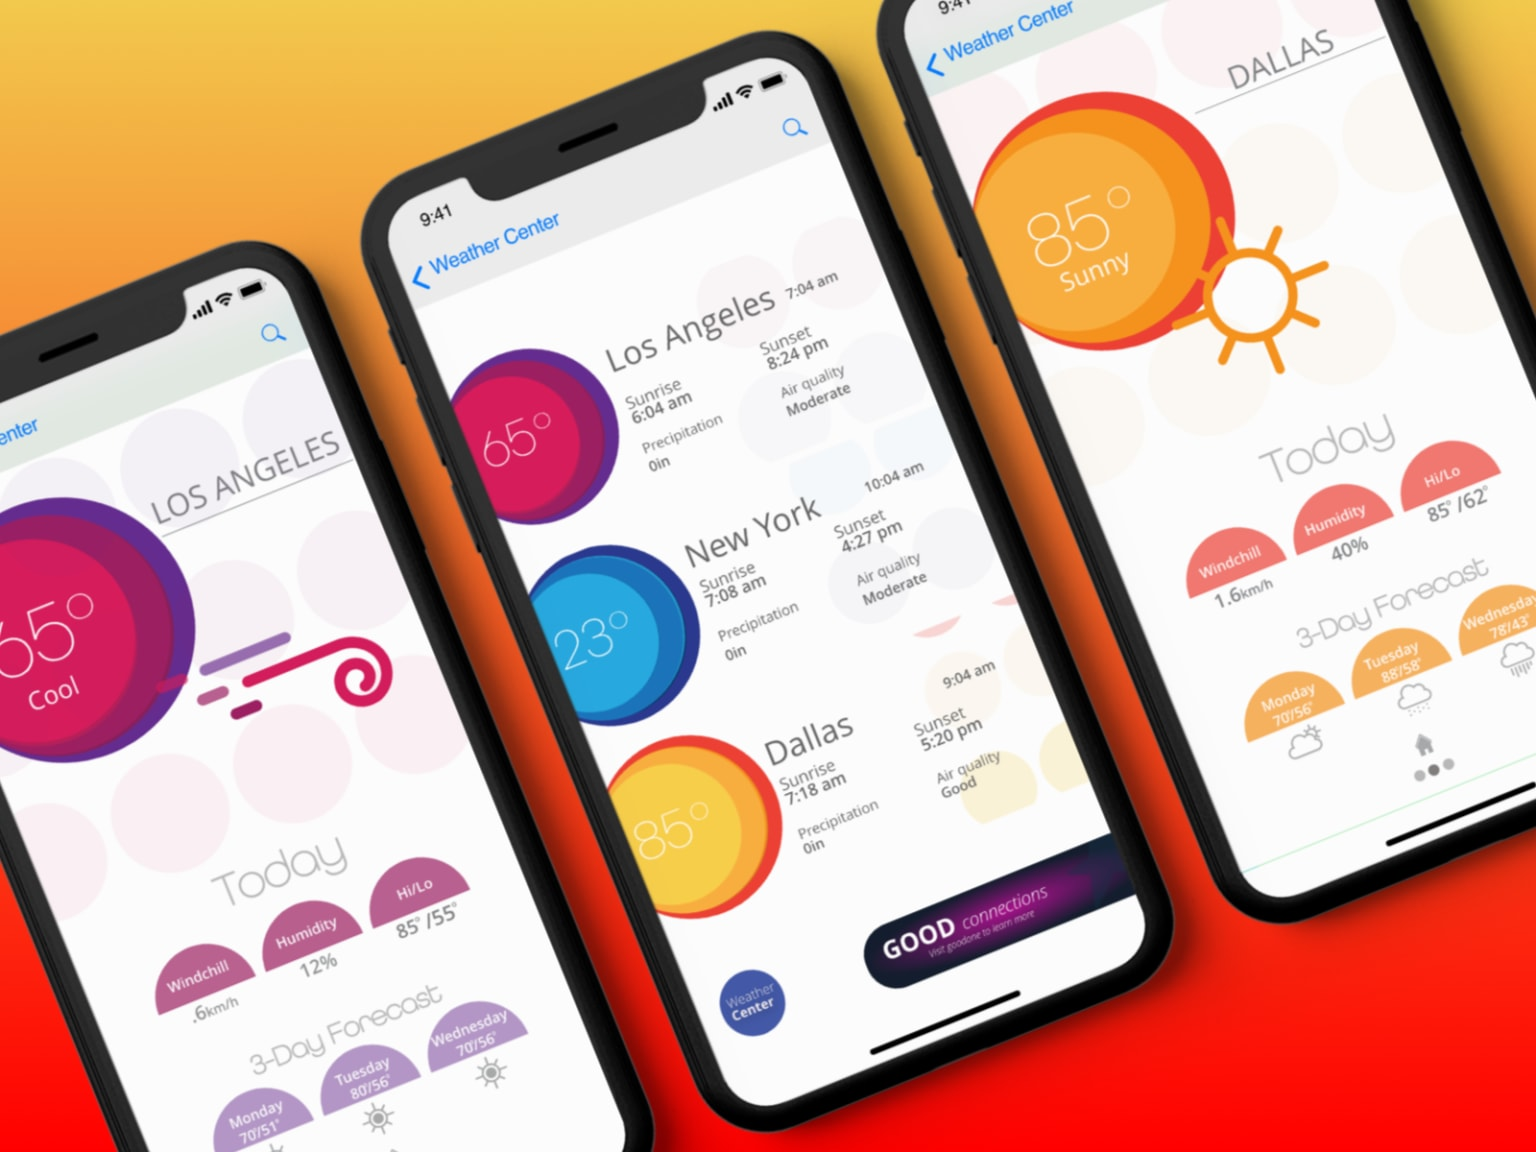 Ui Theme Design For A Weather App